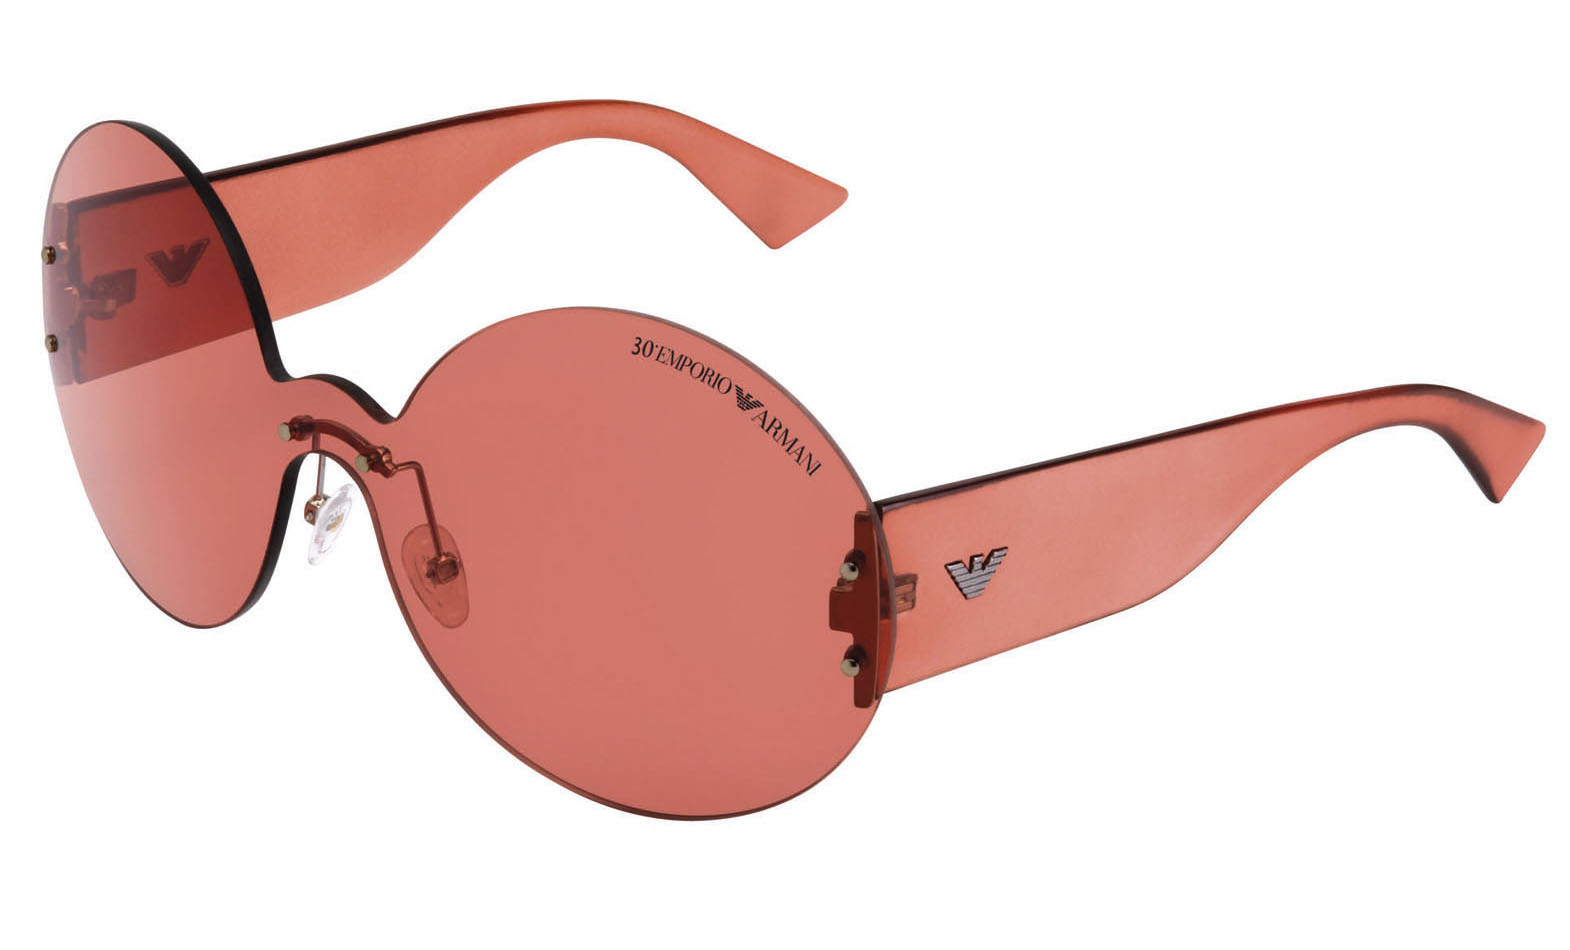 ab7d84dfc81d The '30th EMPORIO ARMANI' logo is presented on the front of the frame and  the metal signature eagle on the temples: